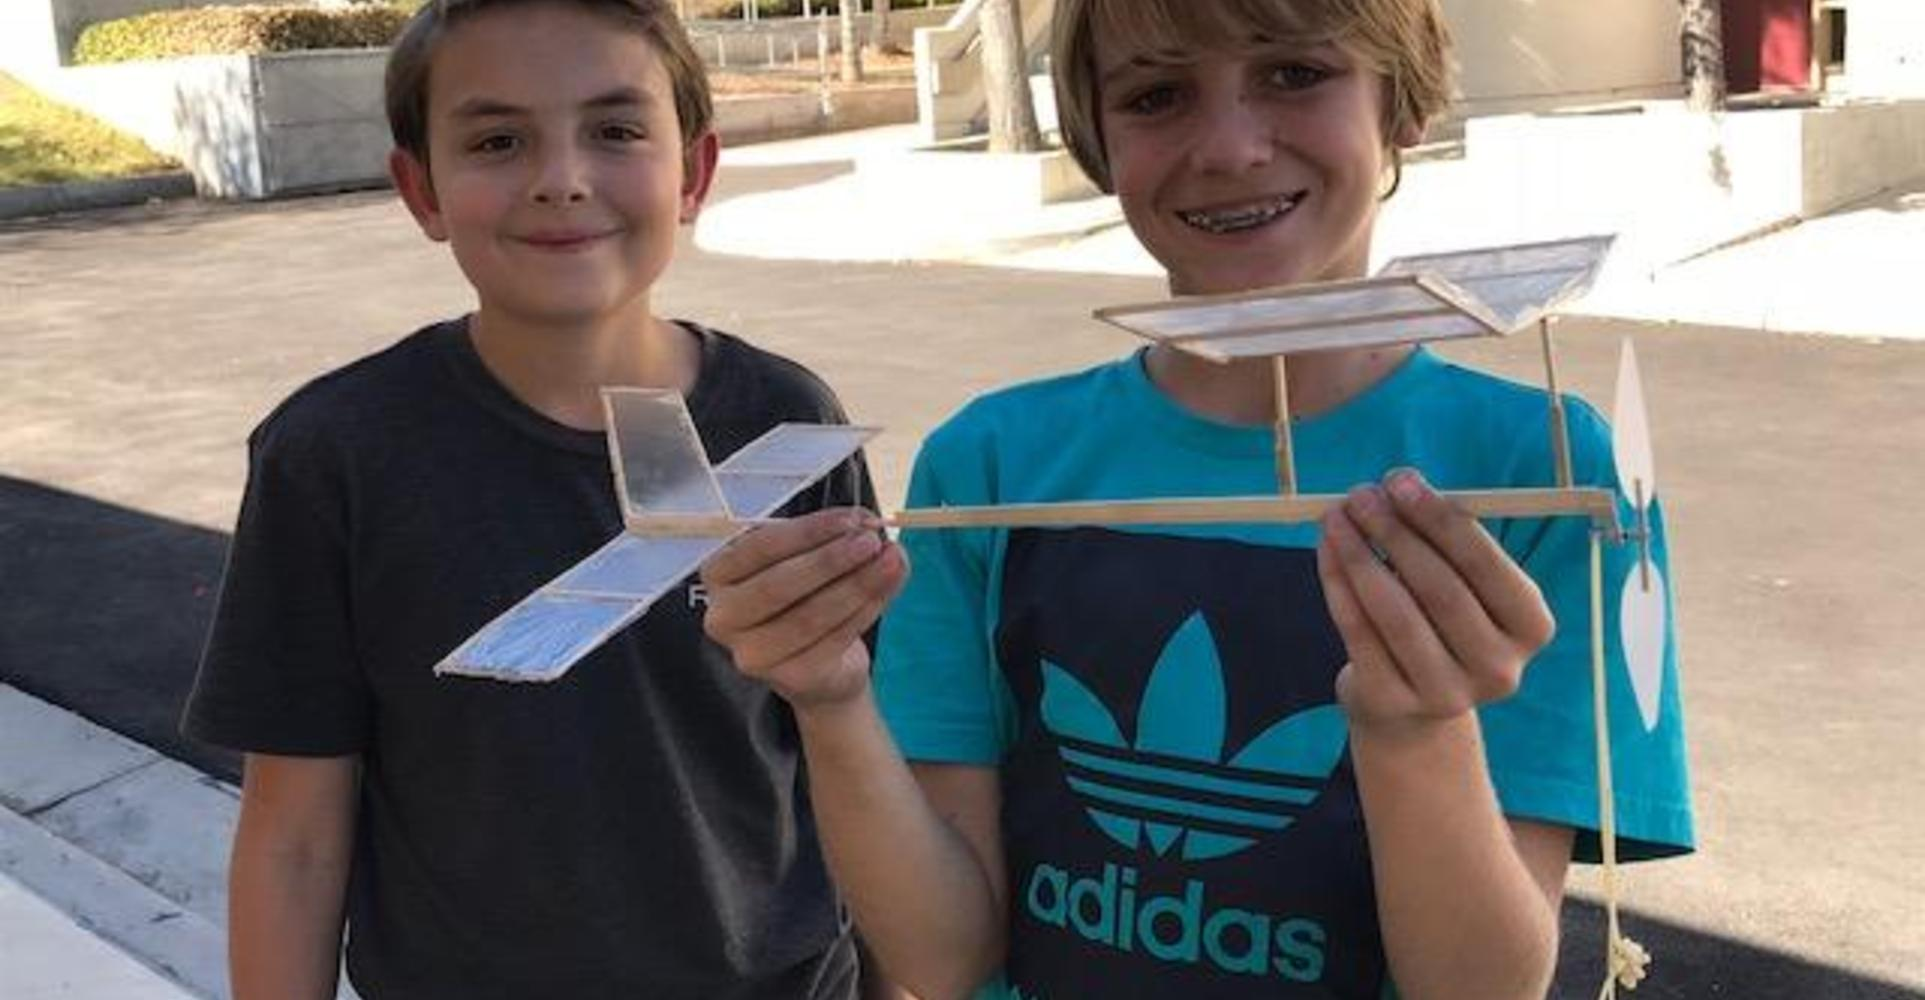 Students holding plane they built.